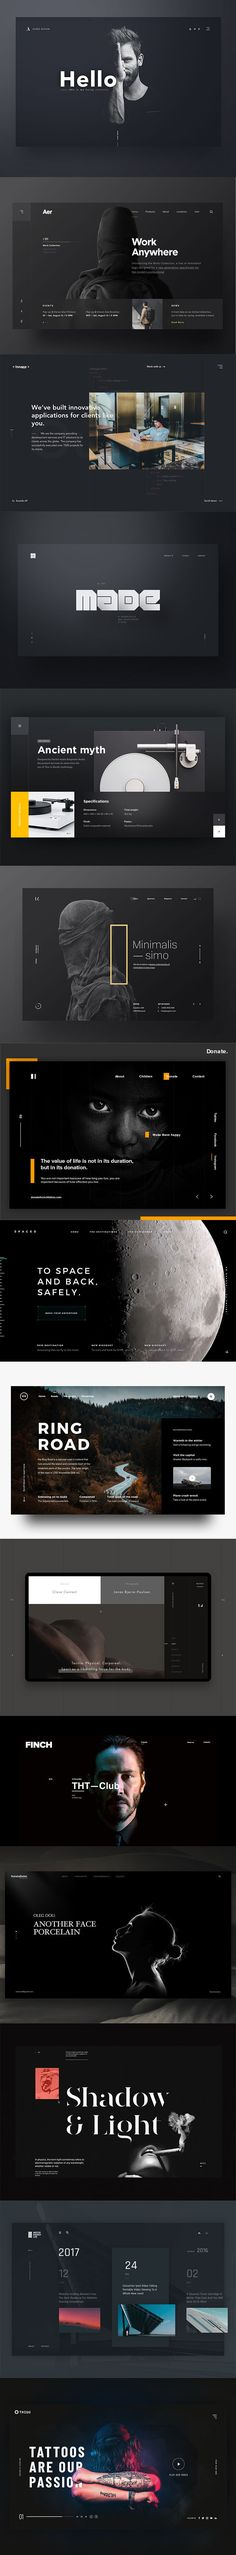 So if you are looking for inspiration for design solutions which using dark background as a basis of color scheme, here are 50 Excellent Dark Background Web UI Designs to inspire you. Web Design Trends, Web Design Tutorial, Flat Design, Graphisches Design, Homepage Design, Web Design Tips, Design Studio, Layout Design, Icon Design